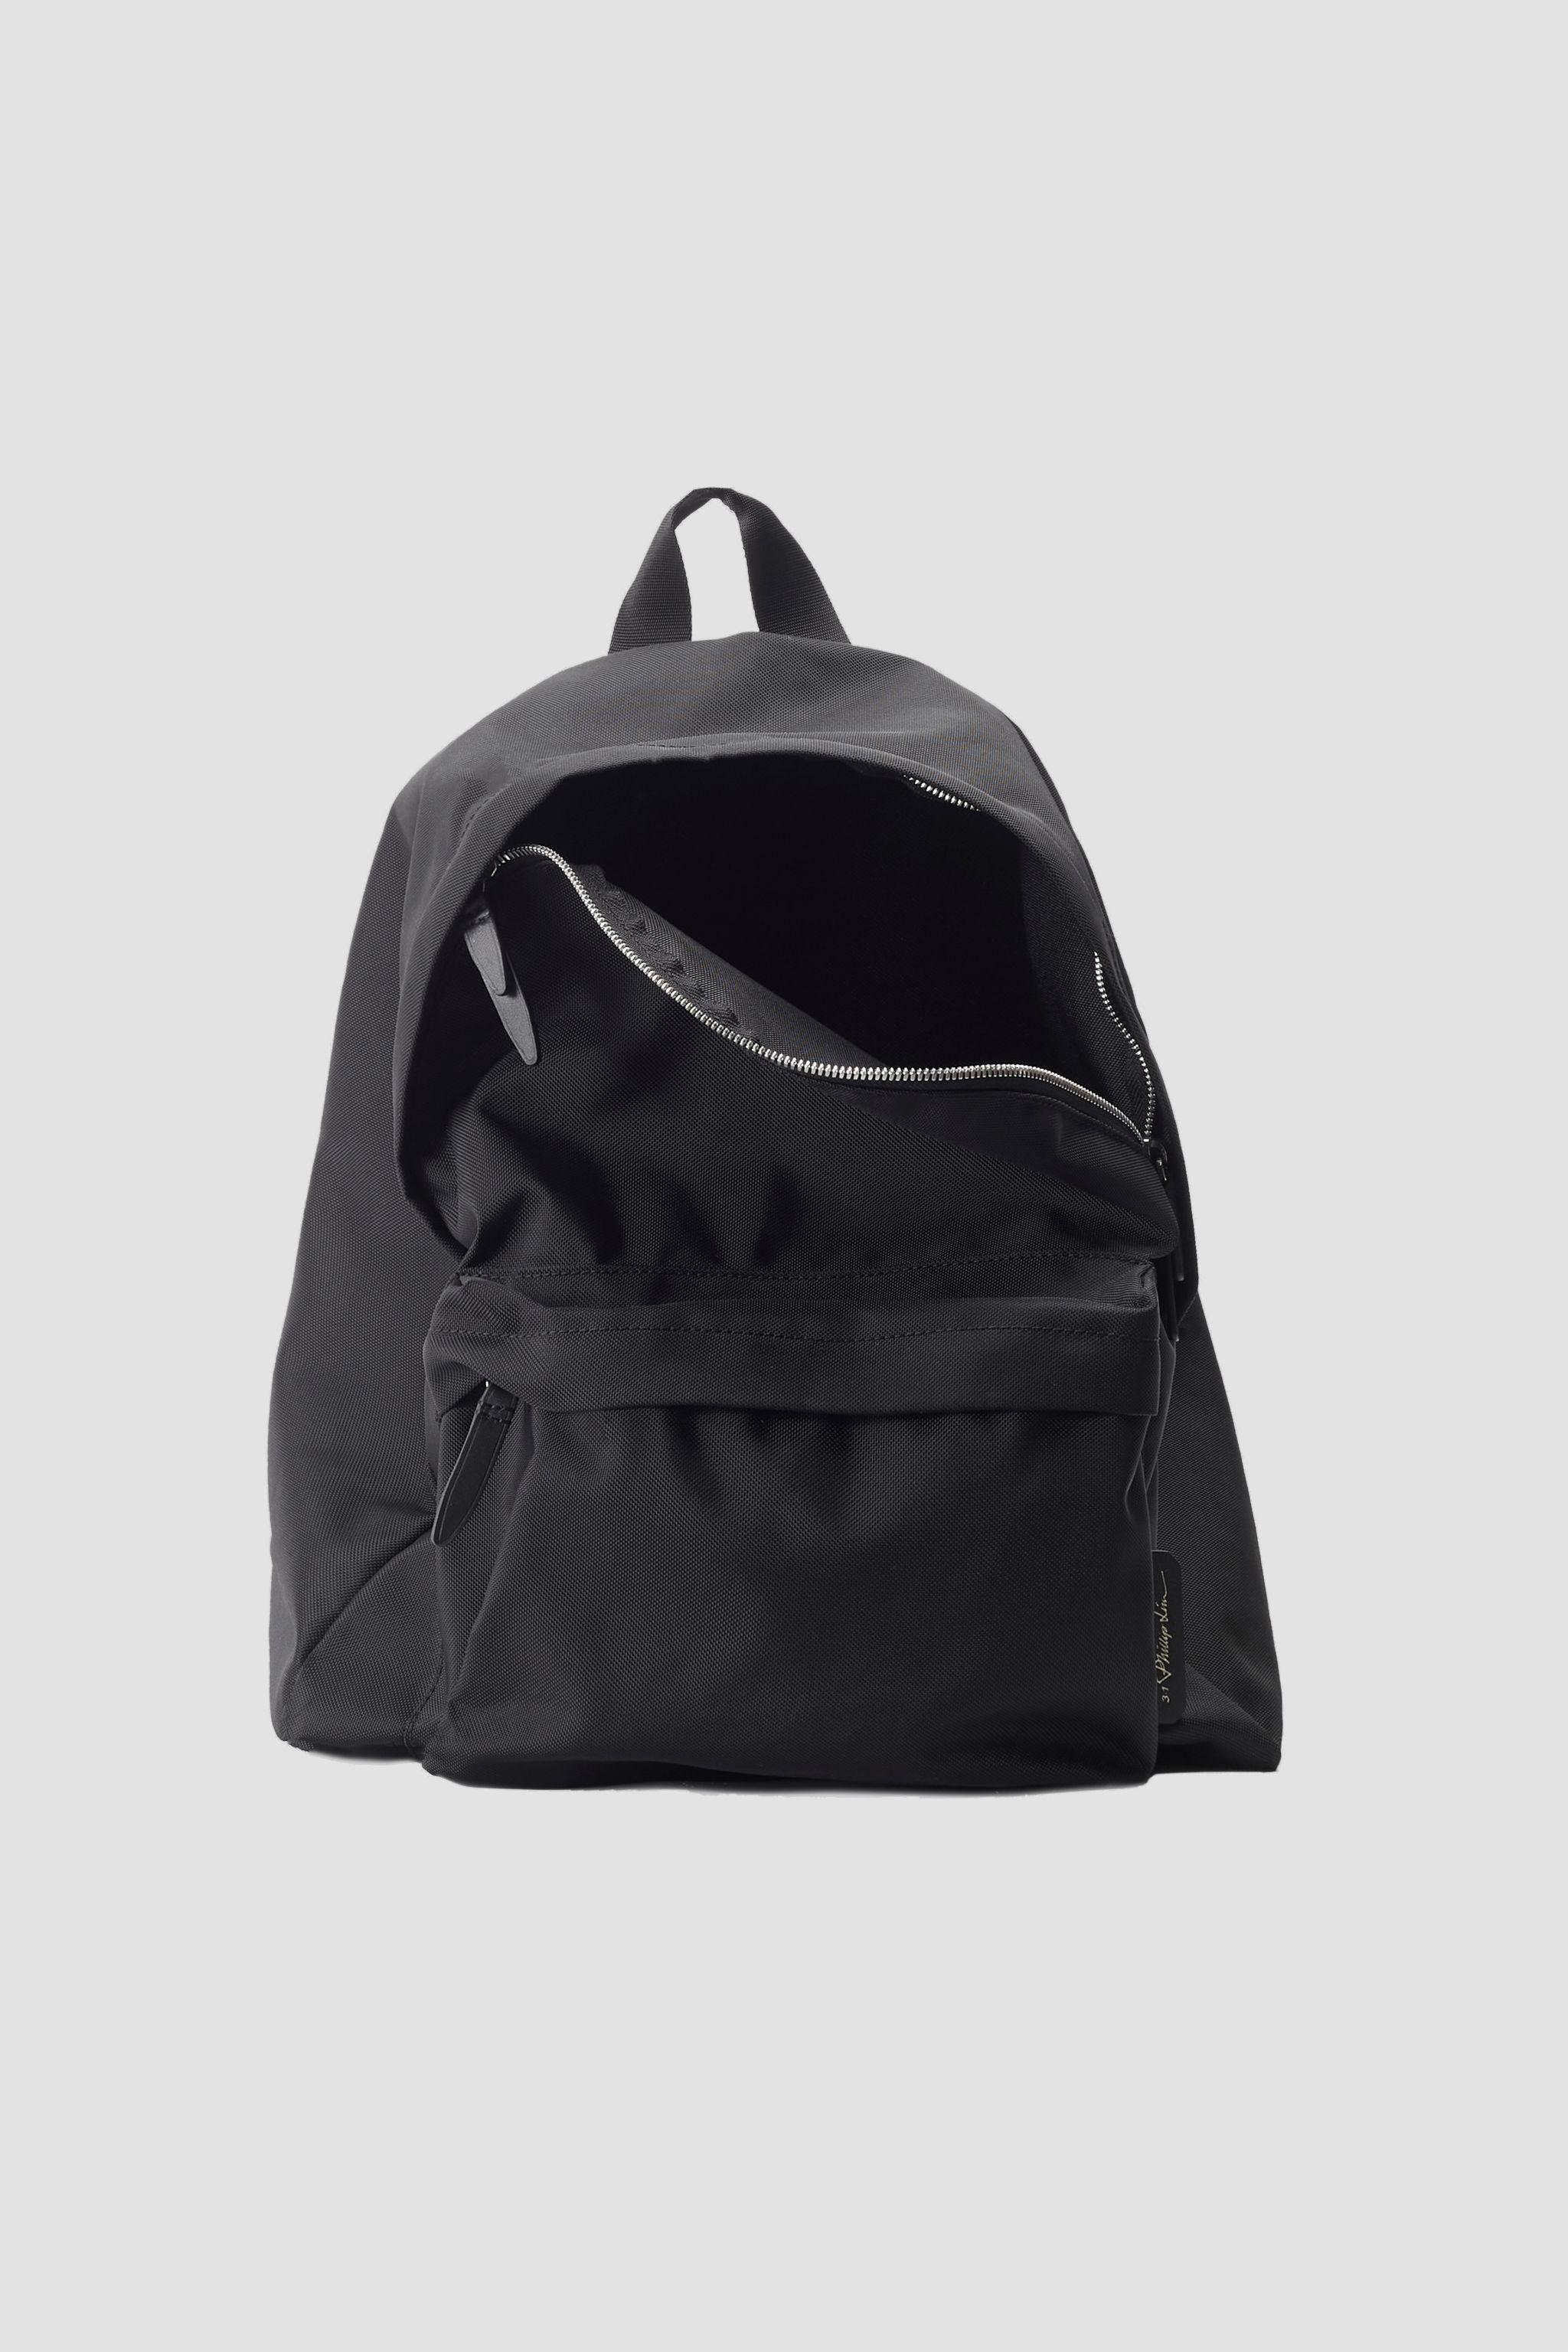 The Deconstructed Backpack 3